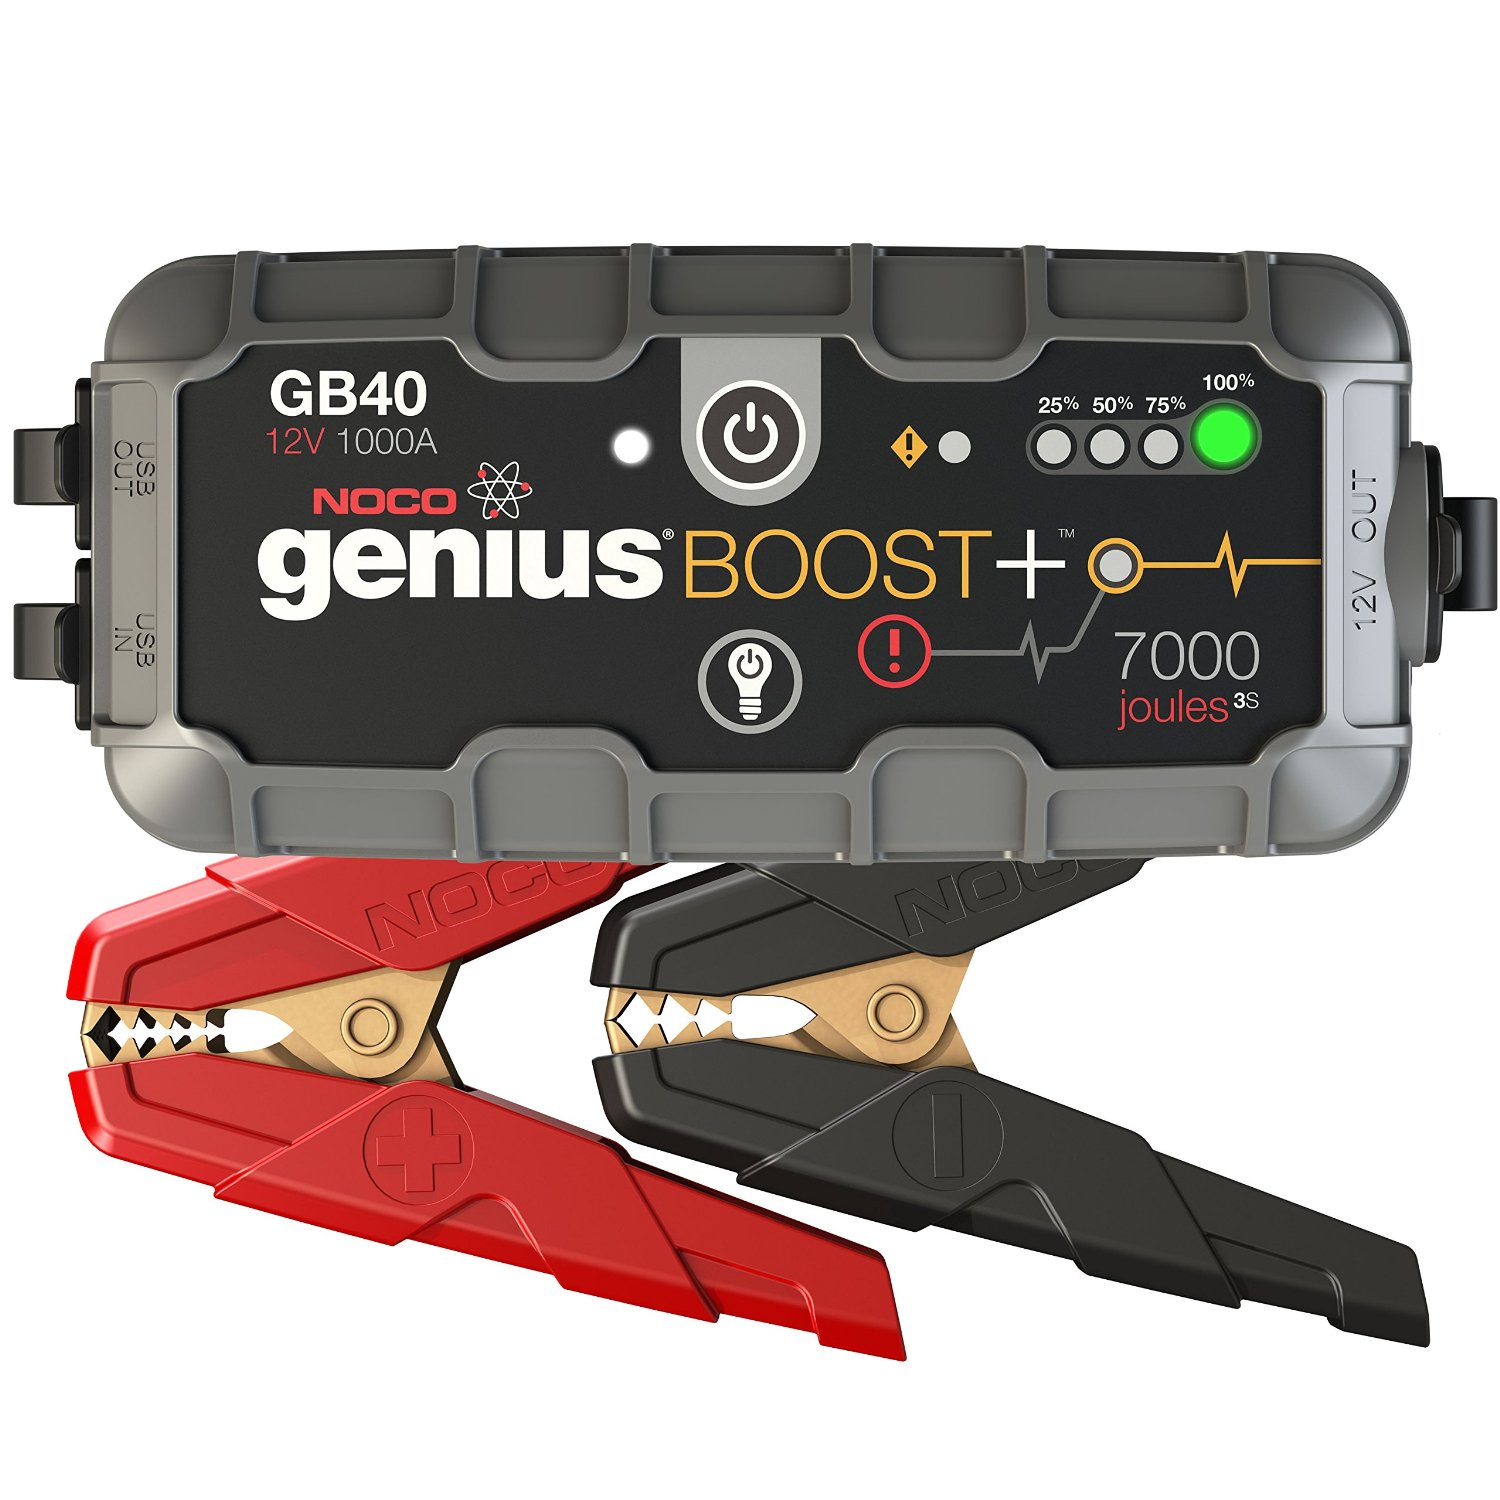 GB40 GENIUS BOOST 1000A